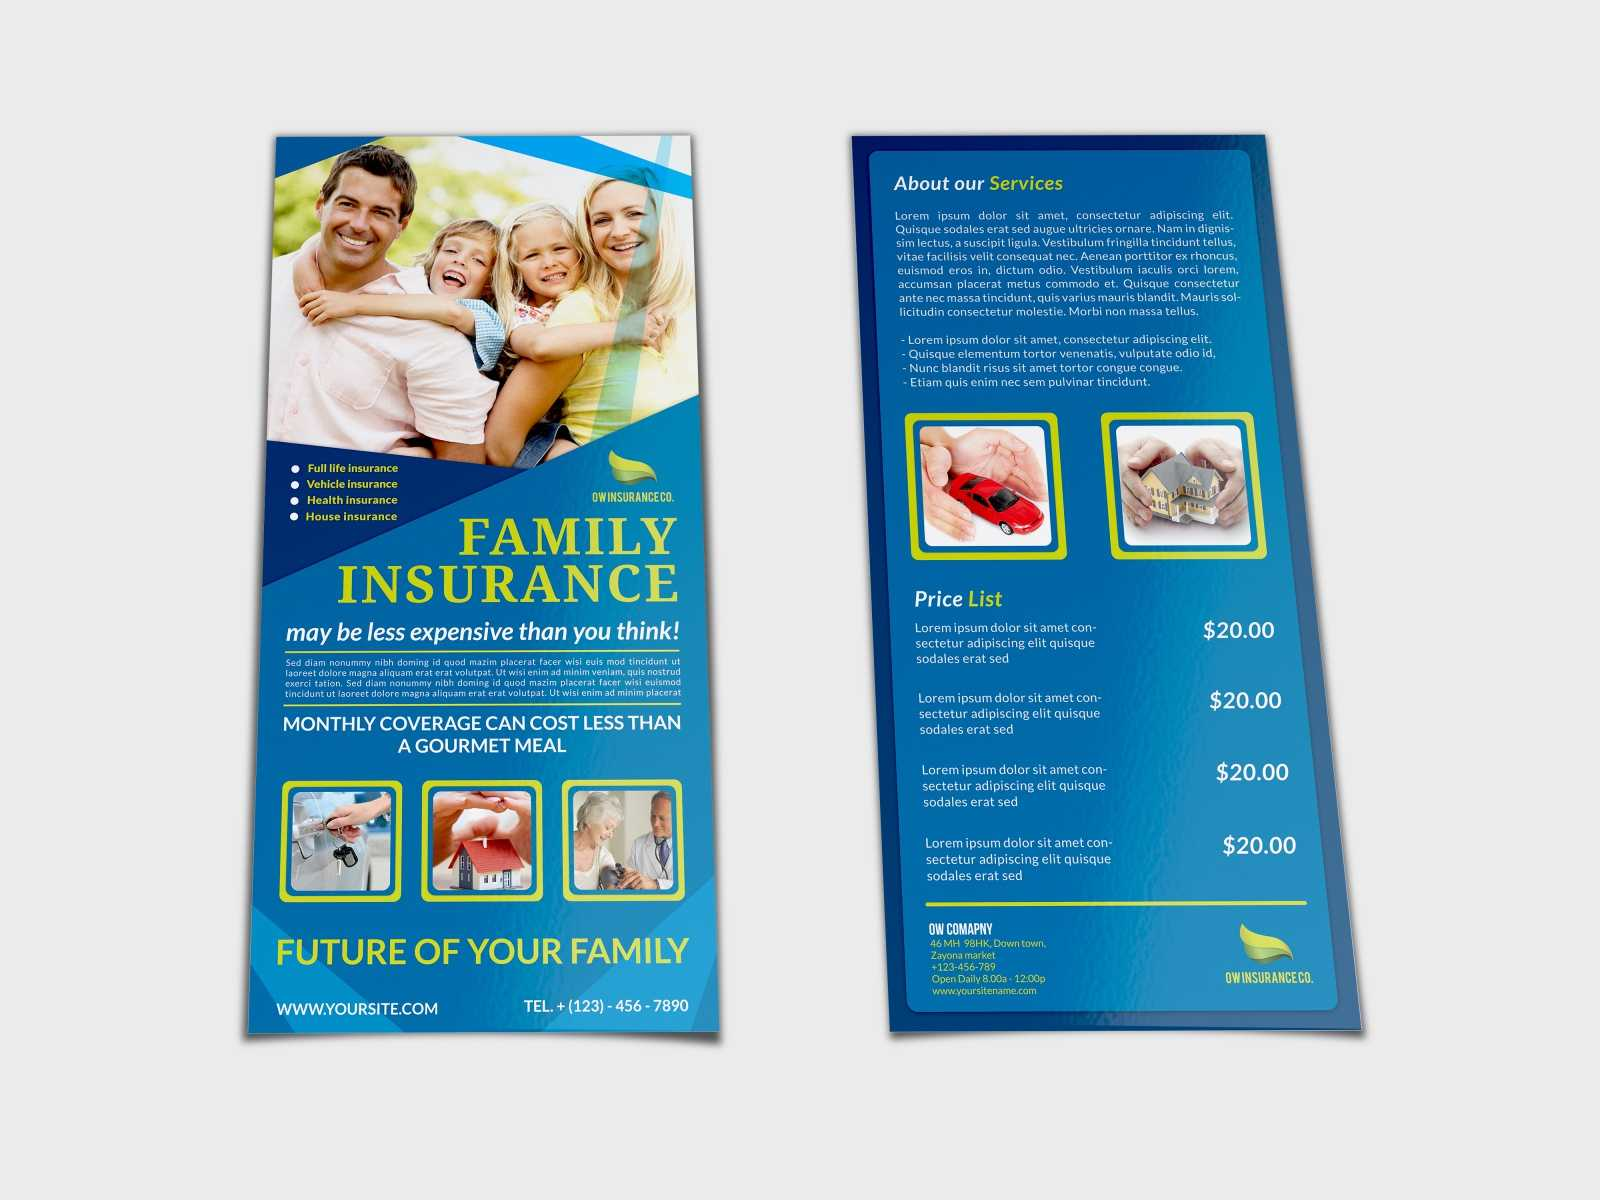 Insurance Flyer Template Dl Sizeowpictures On Dribbble Inside Dl Size Flyer Template